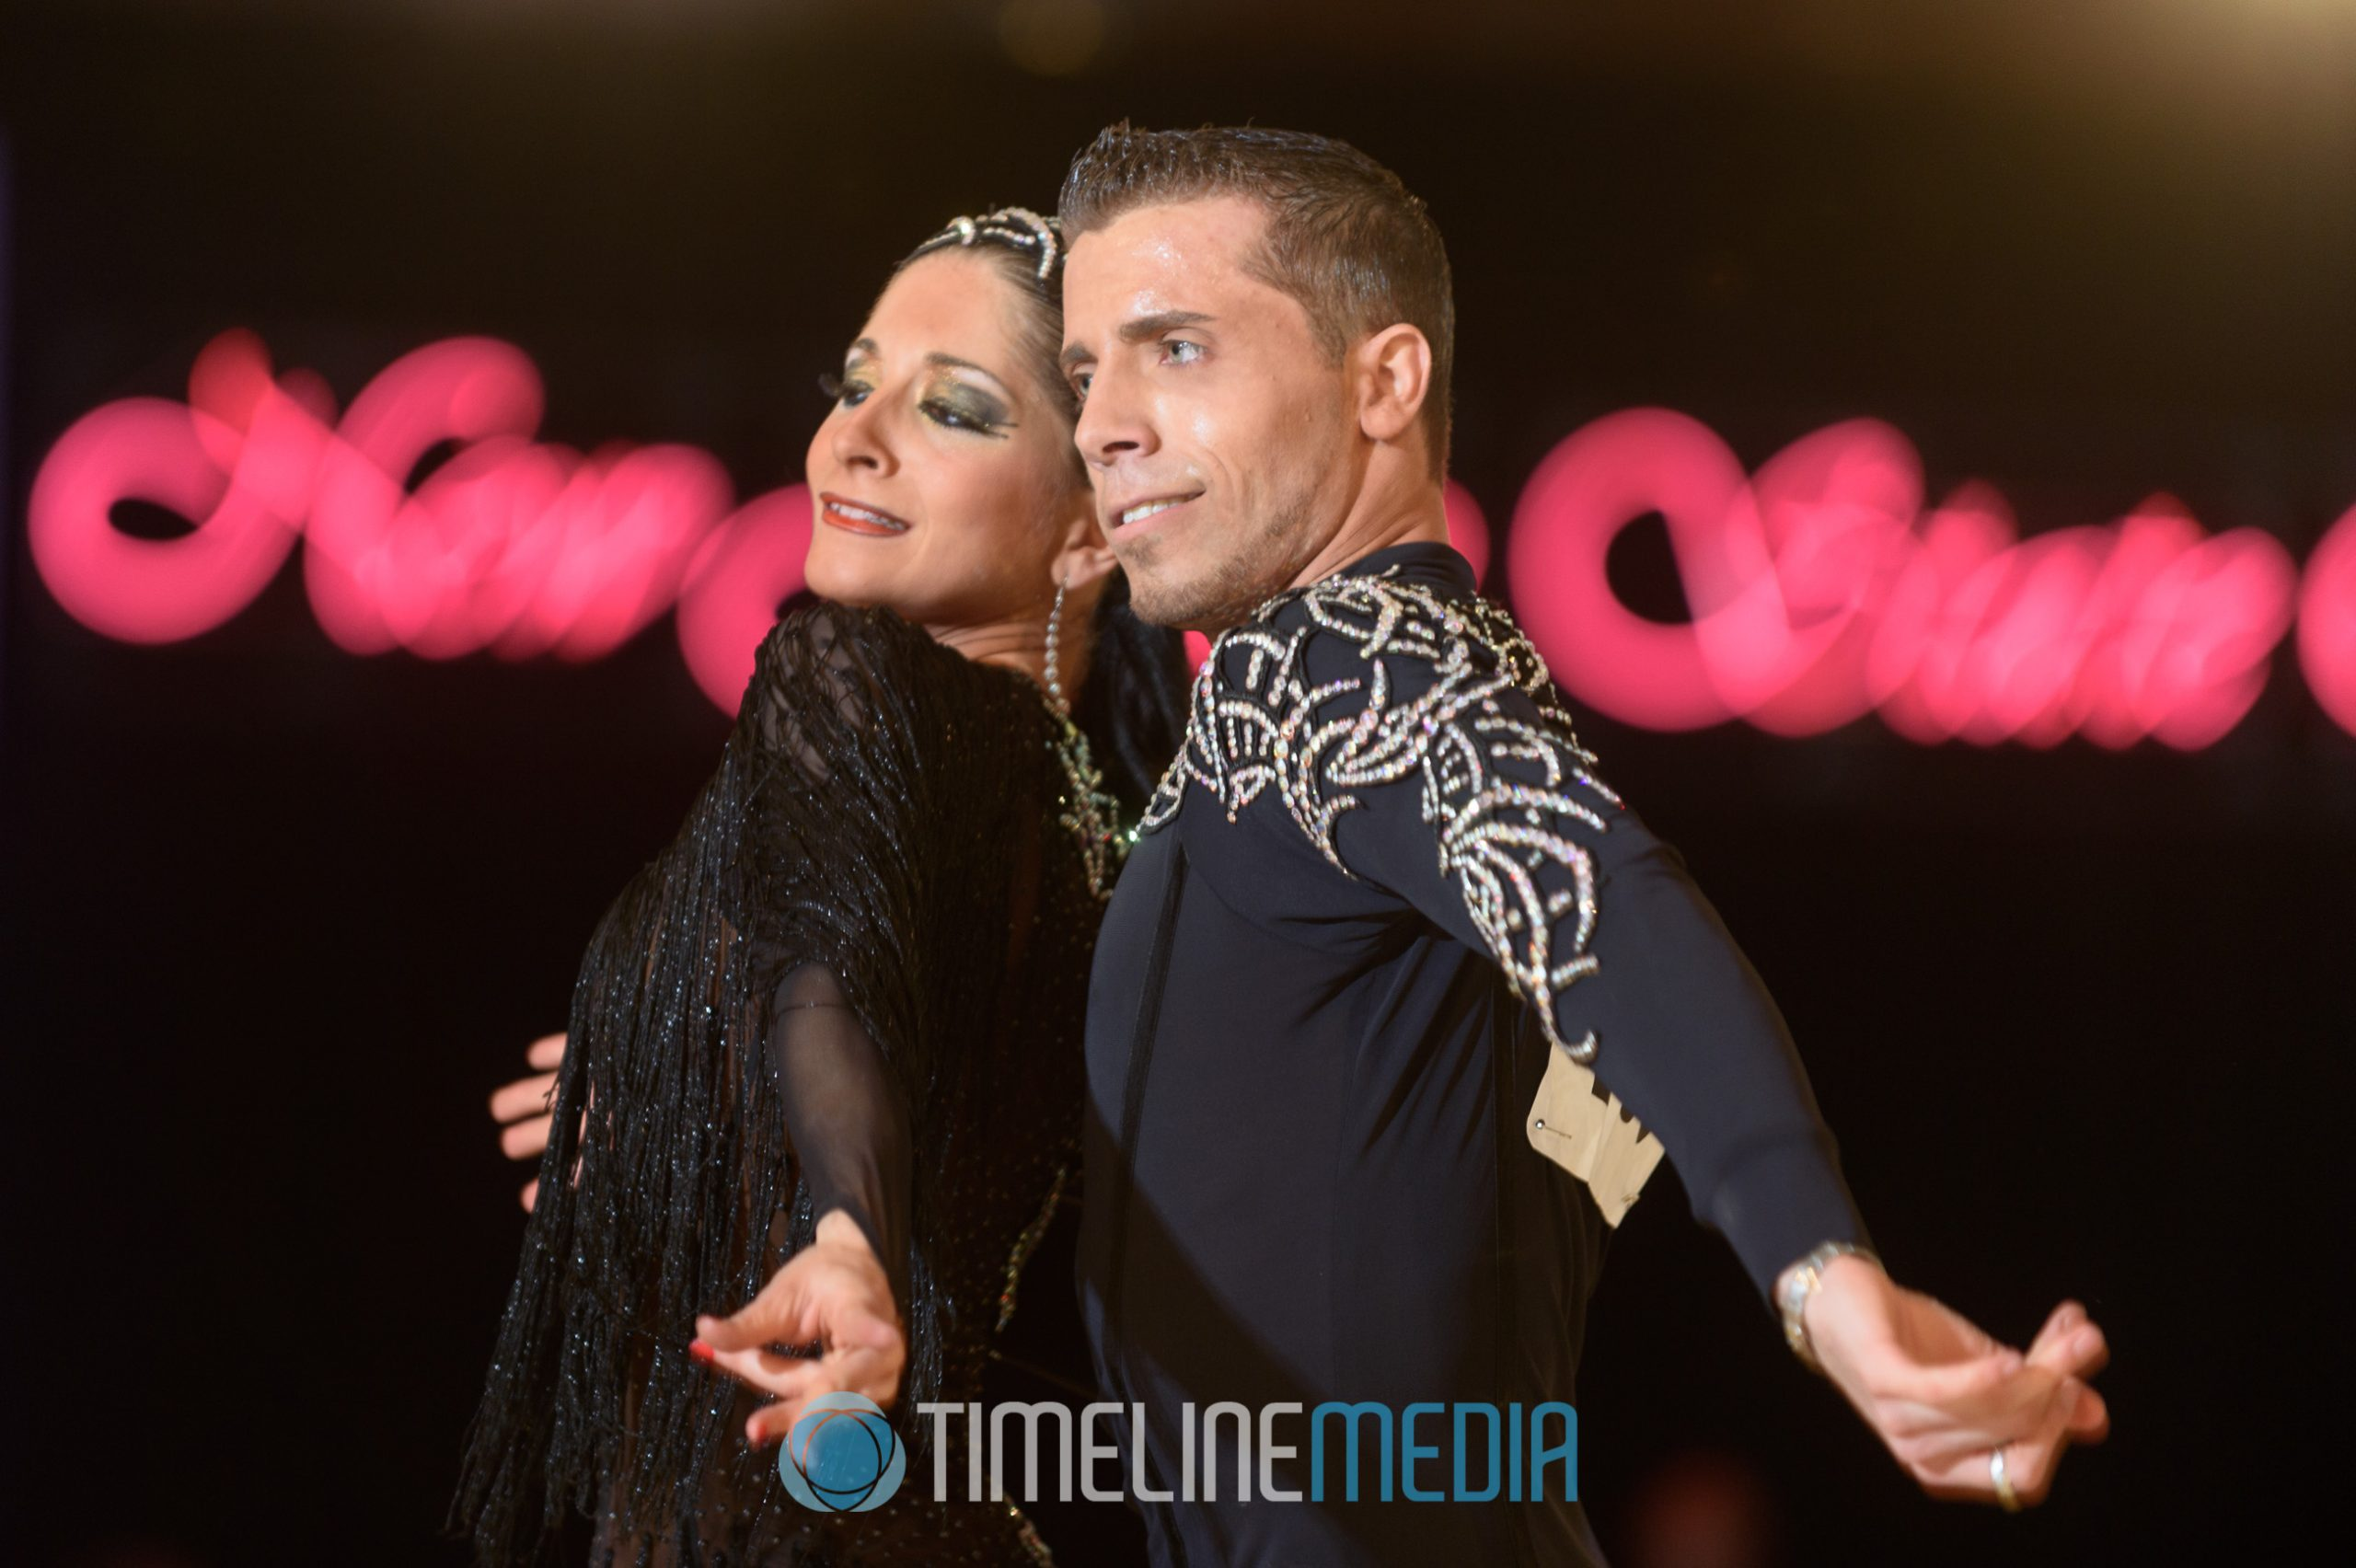 Professional Latin dancers at the New Jersey State Open in Bally's Atlantic City, NJ ©TimeLine Media